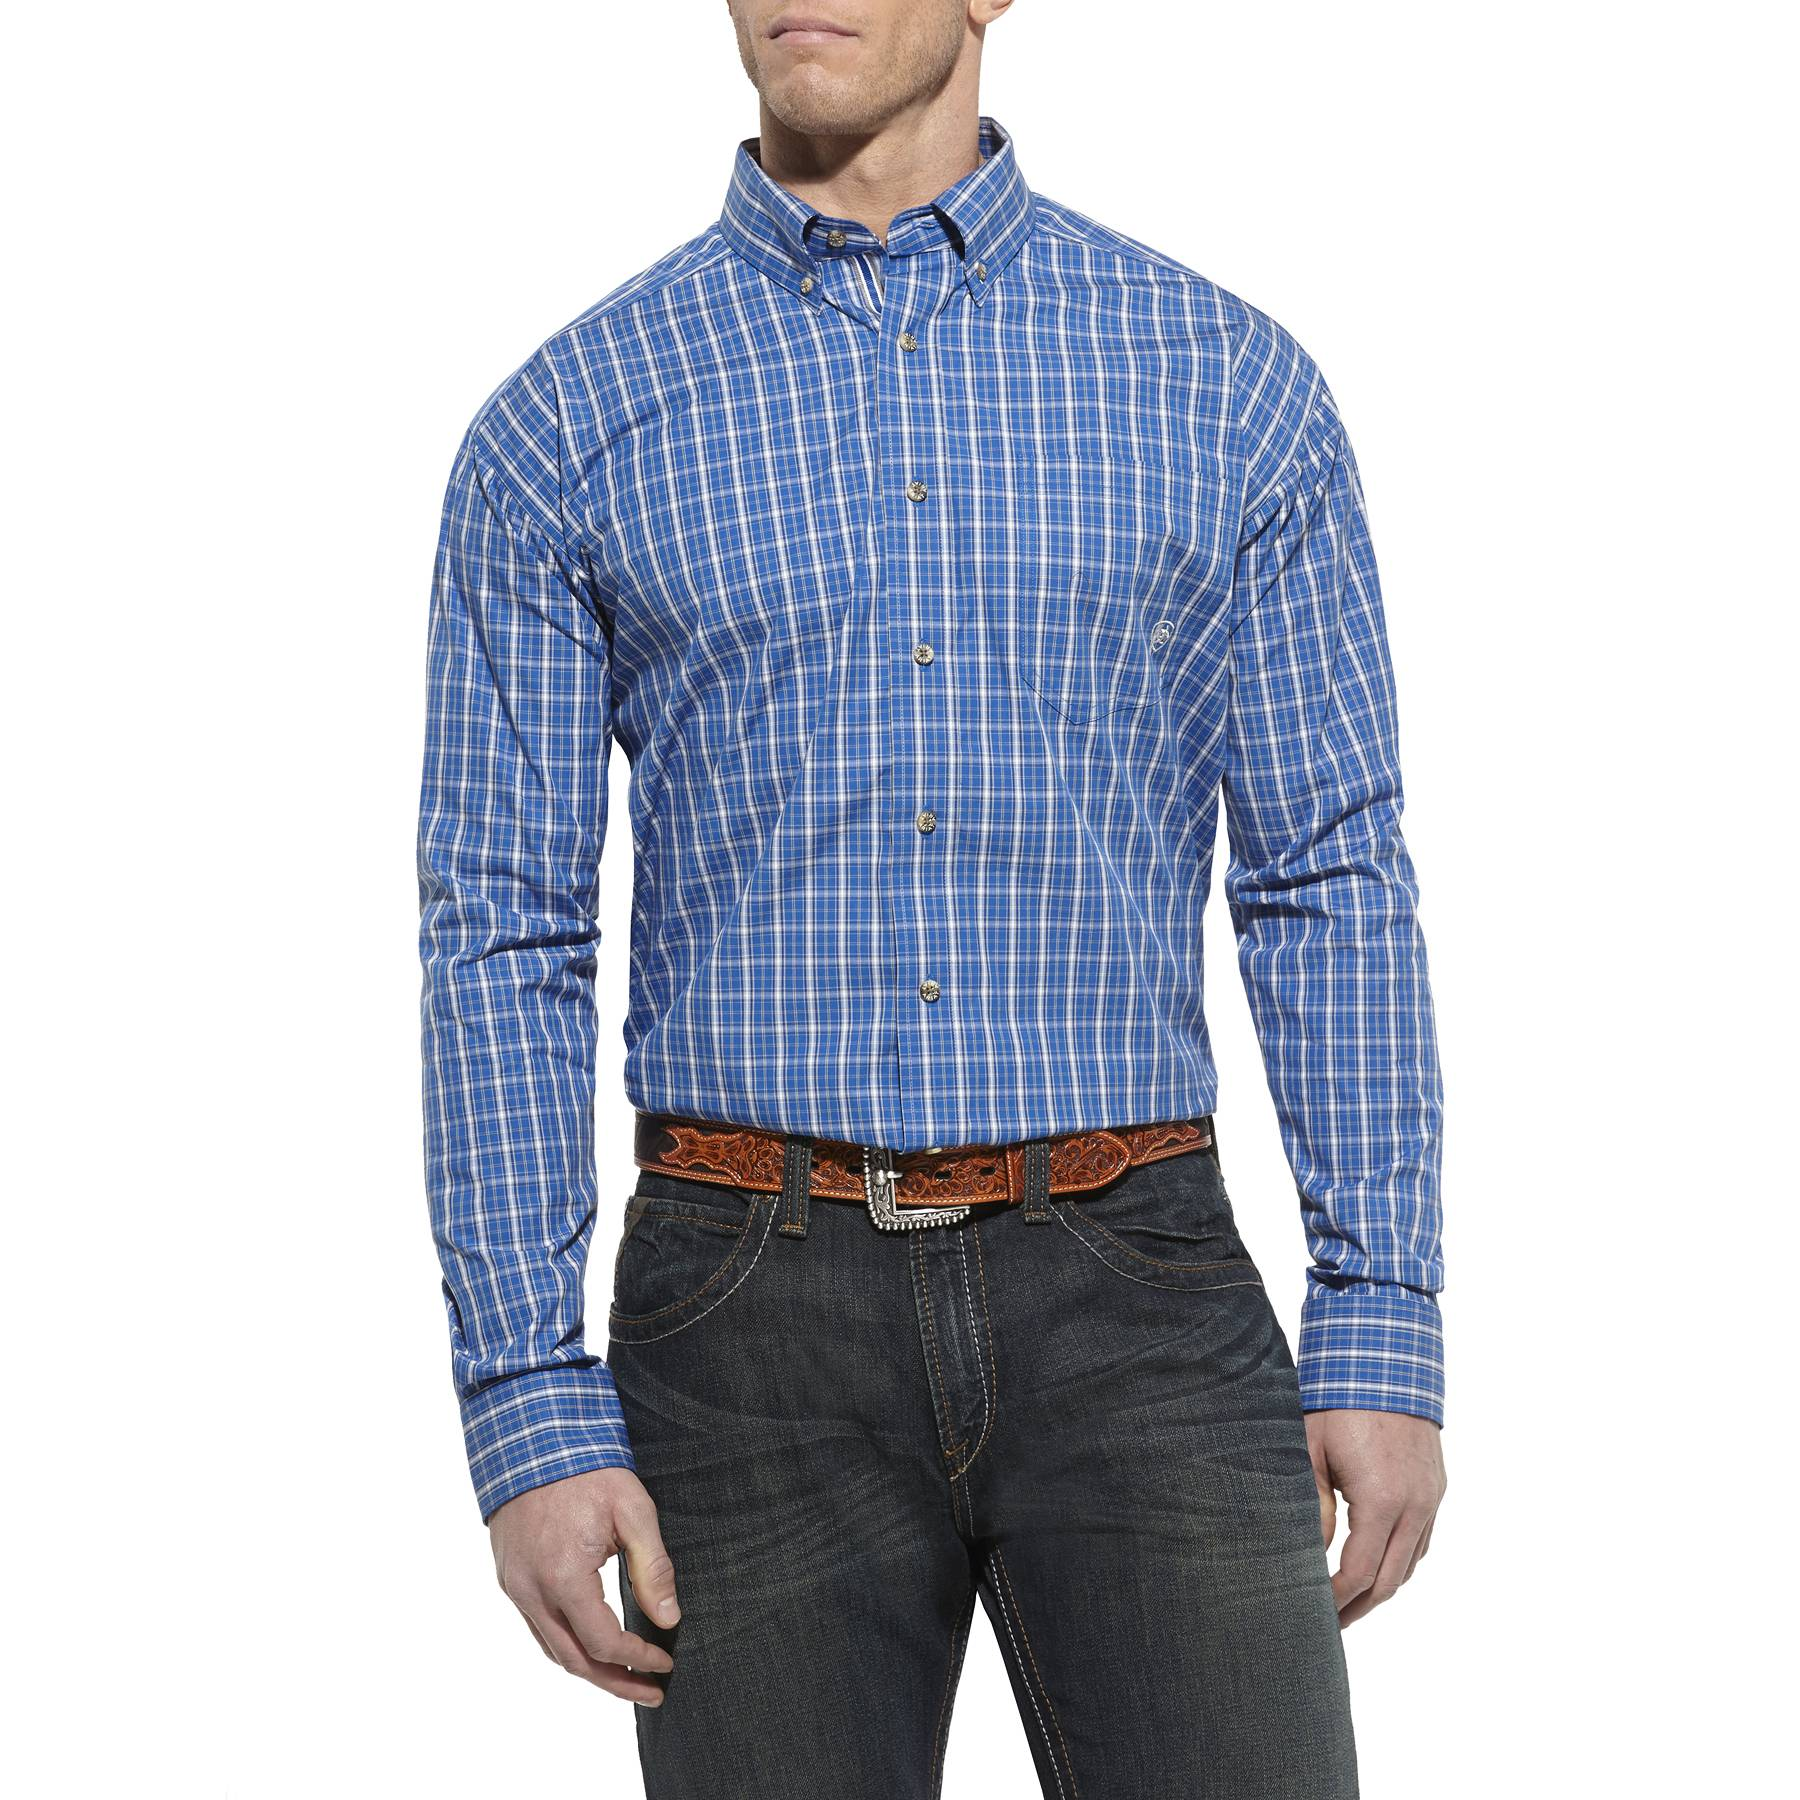 Ariat Men's Inverness Performance Shirt